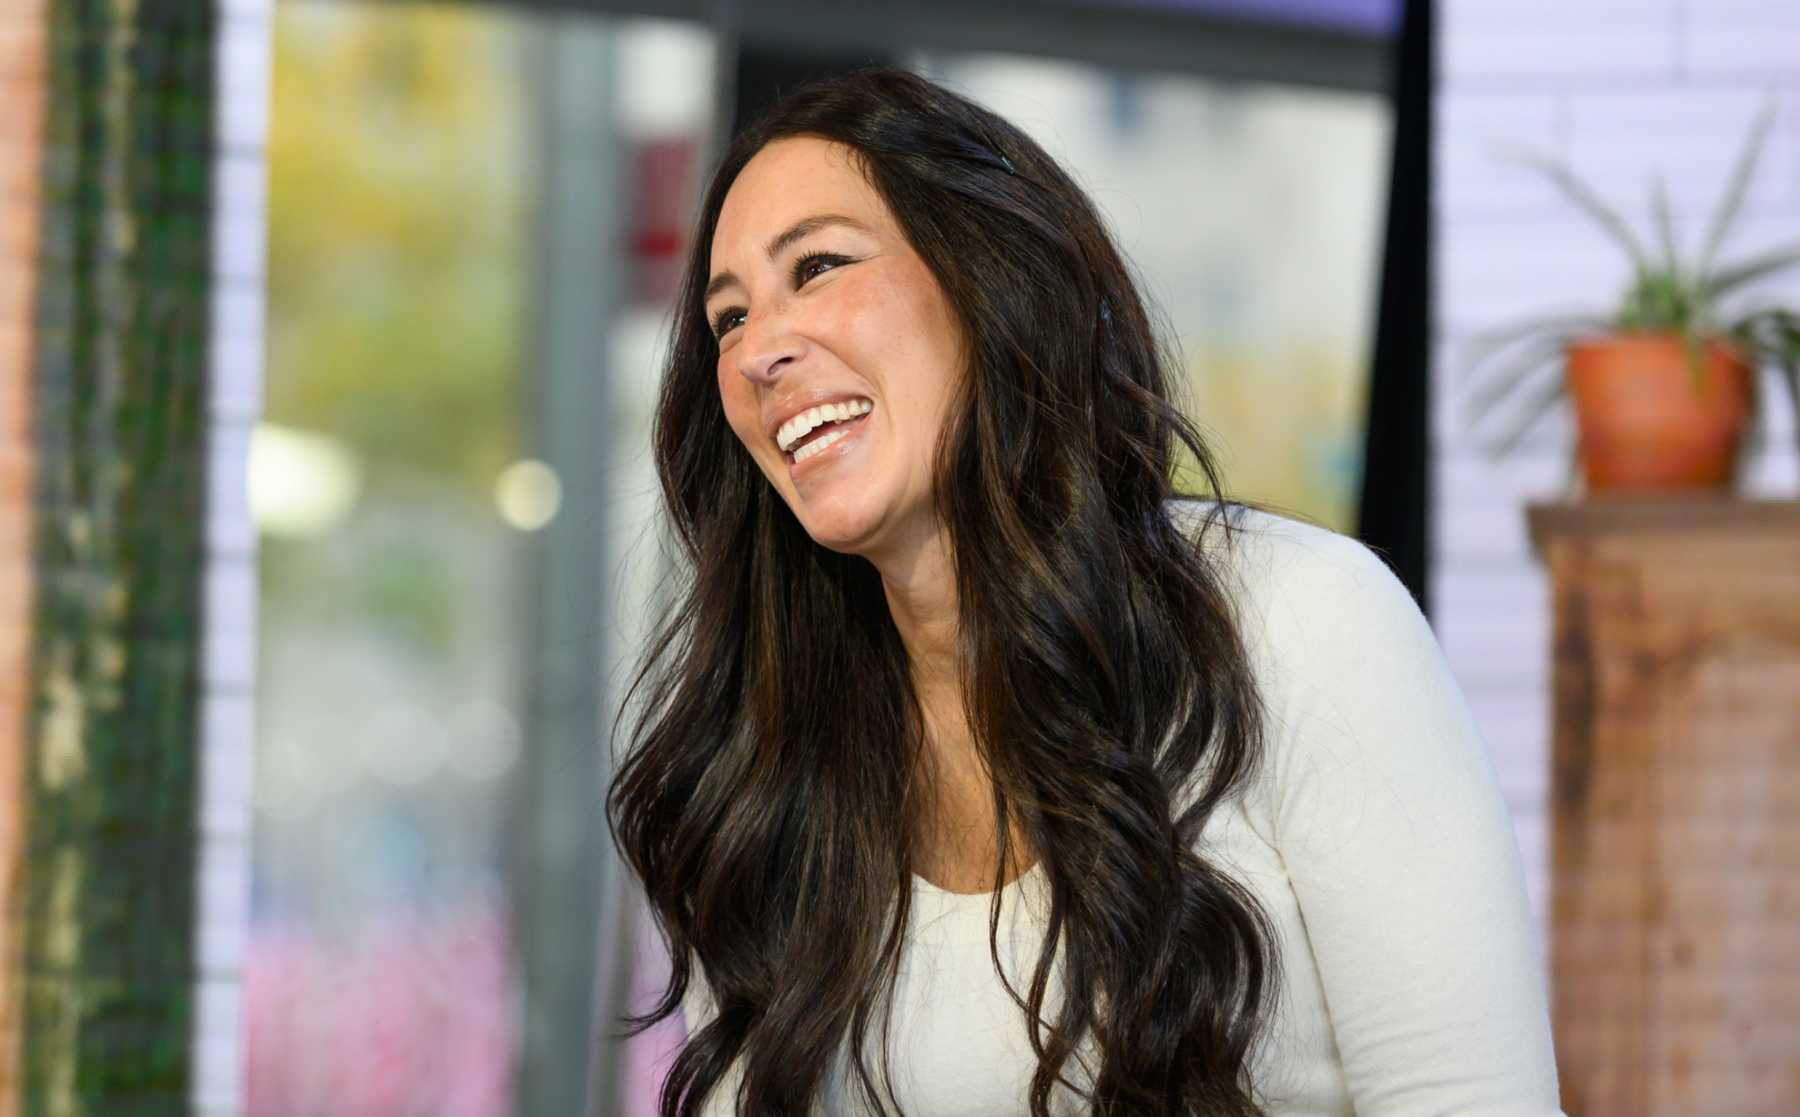 Joanna Gaines Son Crew Shows Off His Pool Table Skills In Adorable Video Mom Com